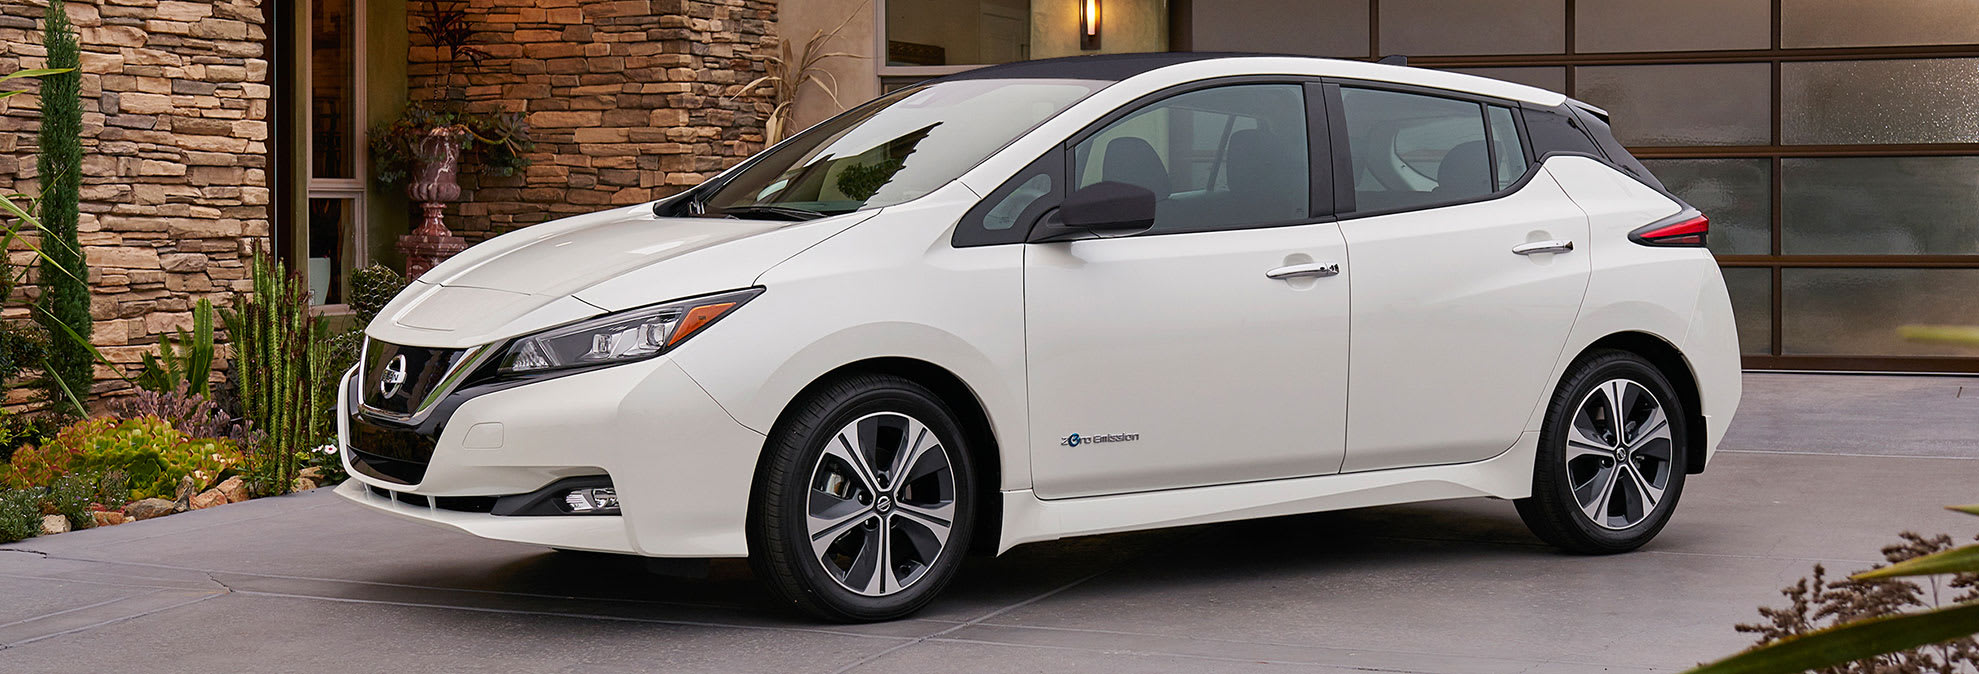 2018 Nissan Leaf Ev Preview Consumer Reports